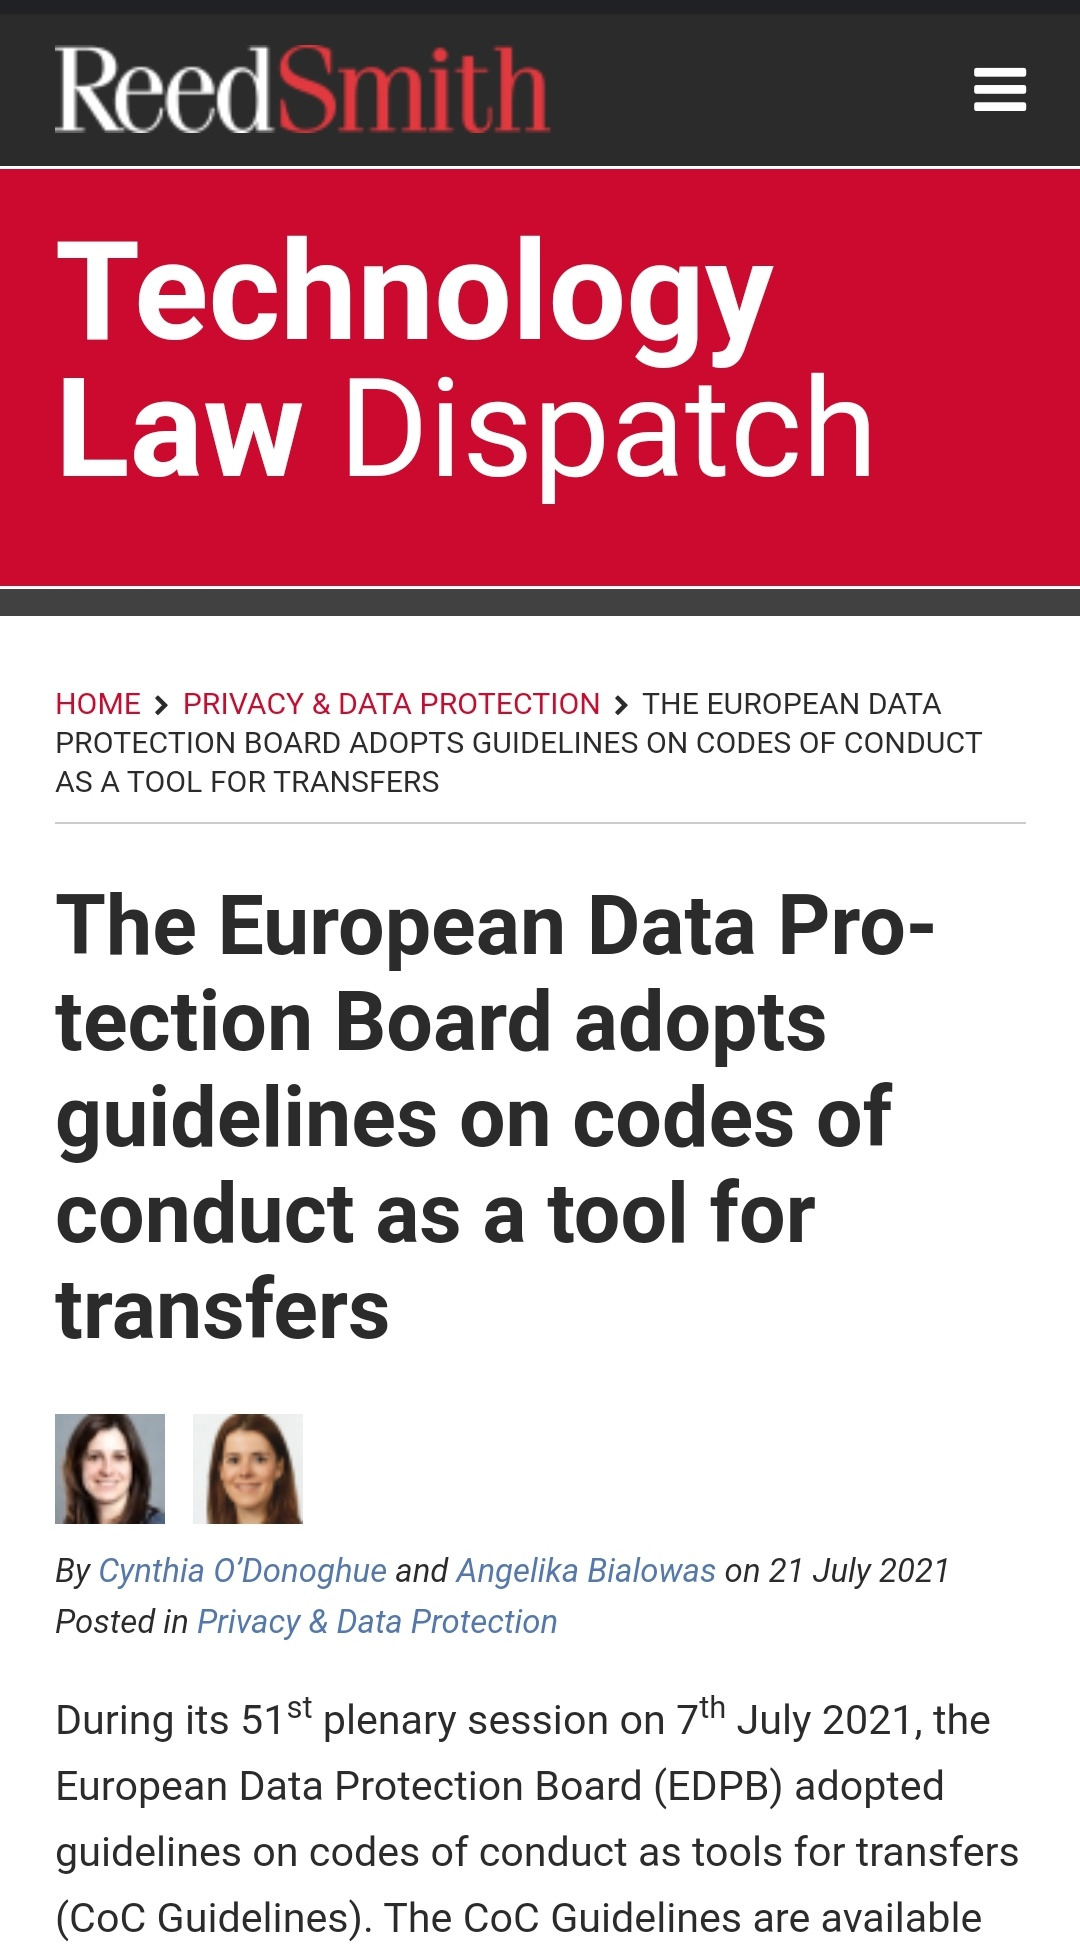 The European Data Protection Board adopts guidelines on codes of conduct as a tool for transfers